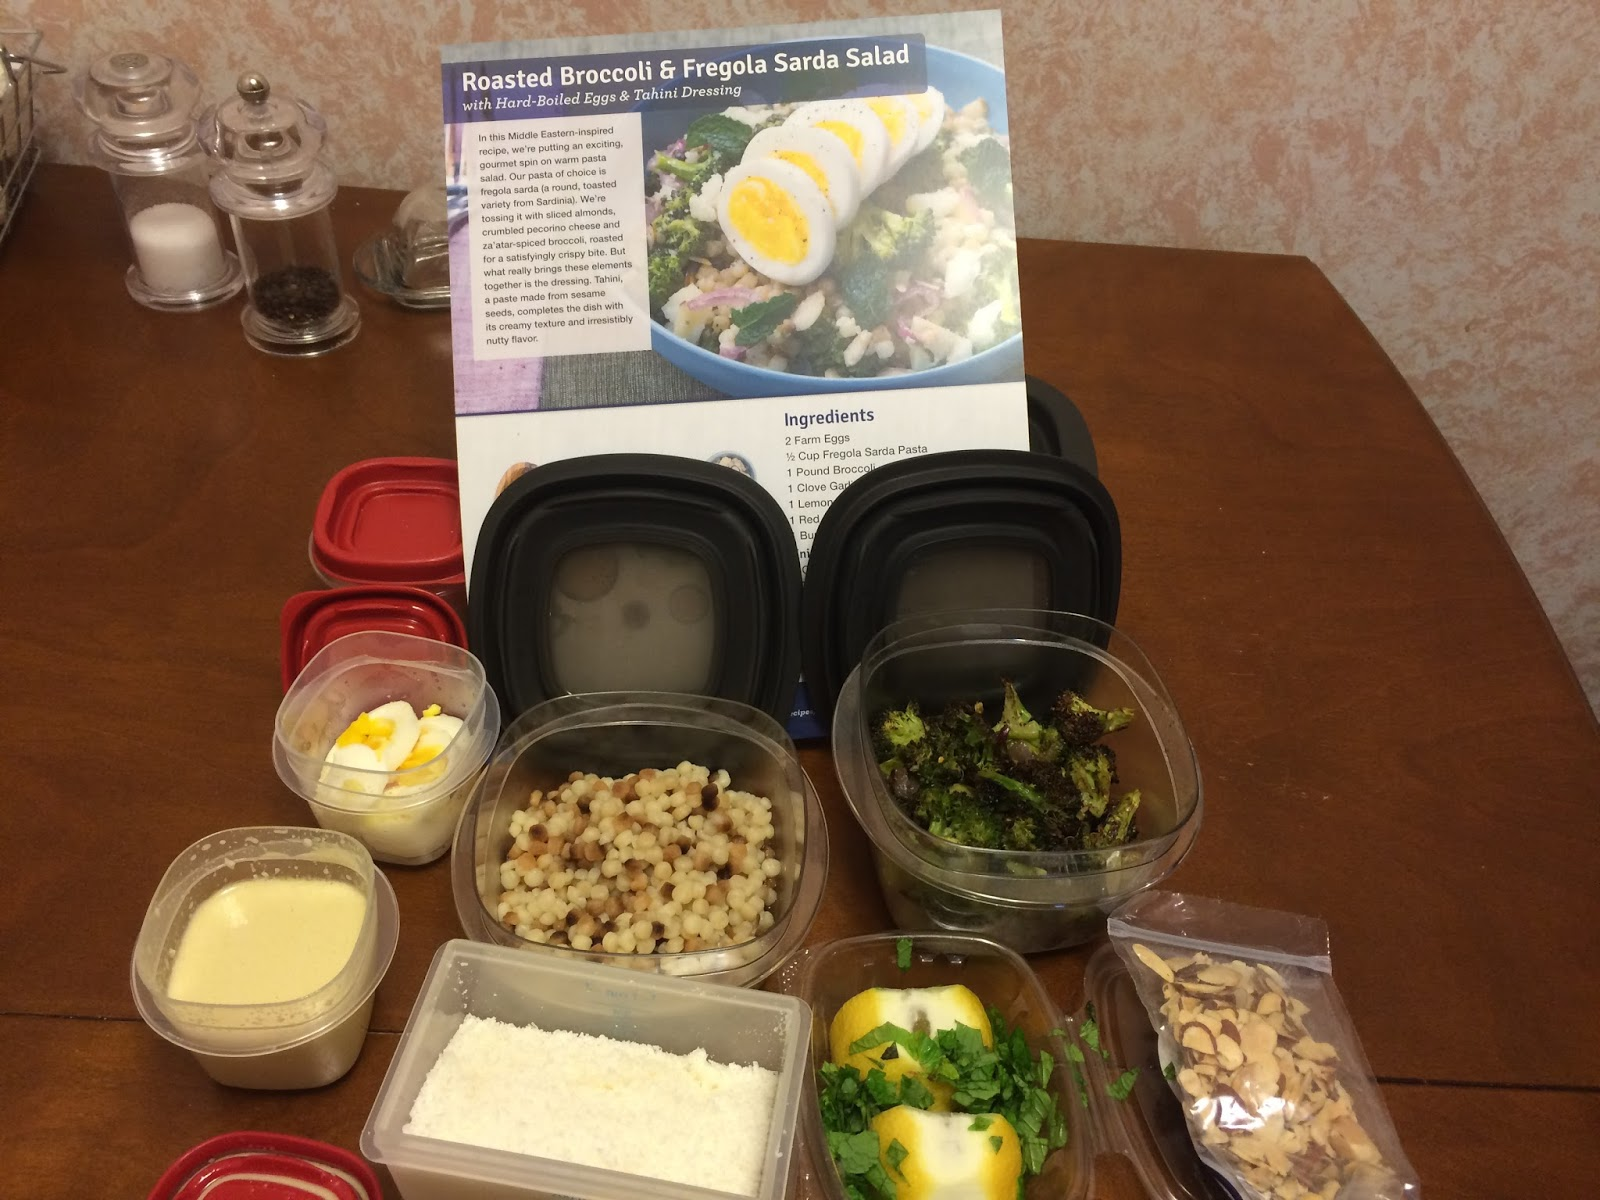 Blue apron broccoli - If You Are Making This Well Before You Want To Serve It Keep The Broccoli Mix Pasta Dressing Egg And Toppings All Separate Until You Are Ready To Eat